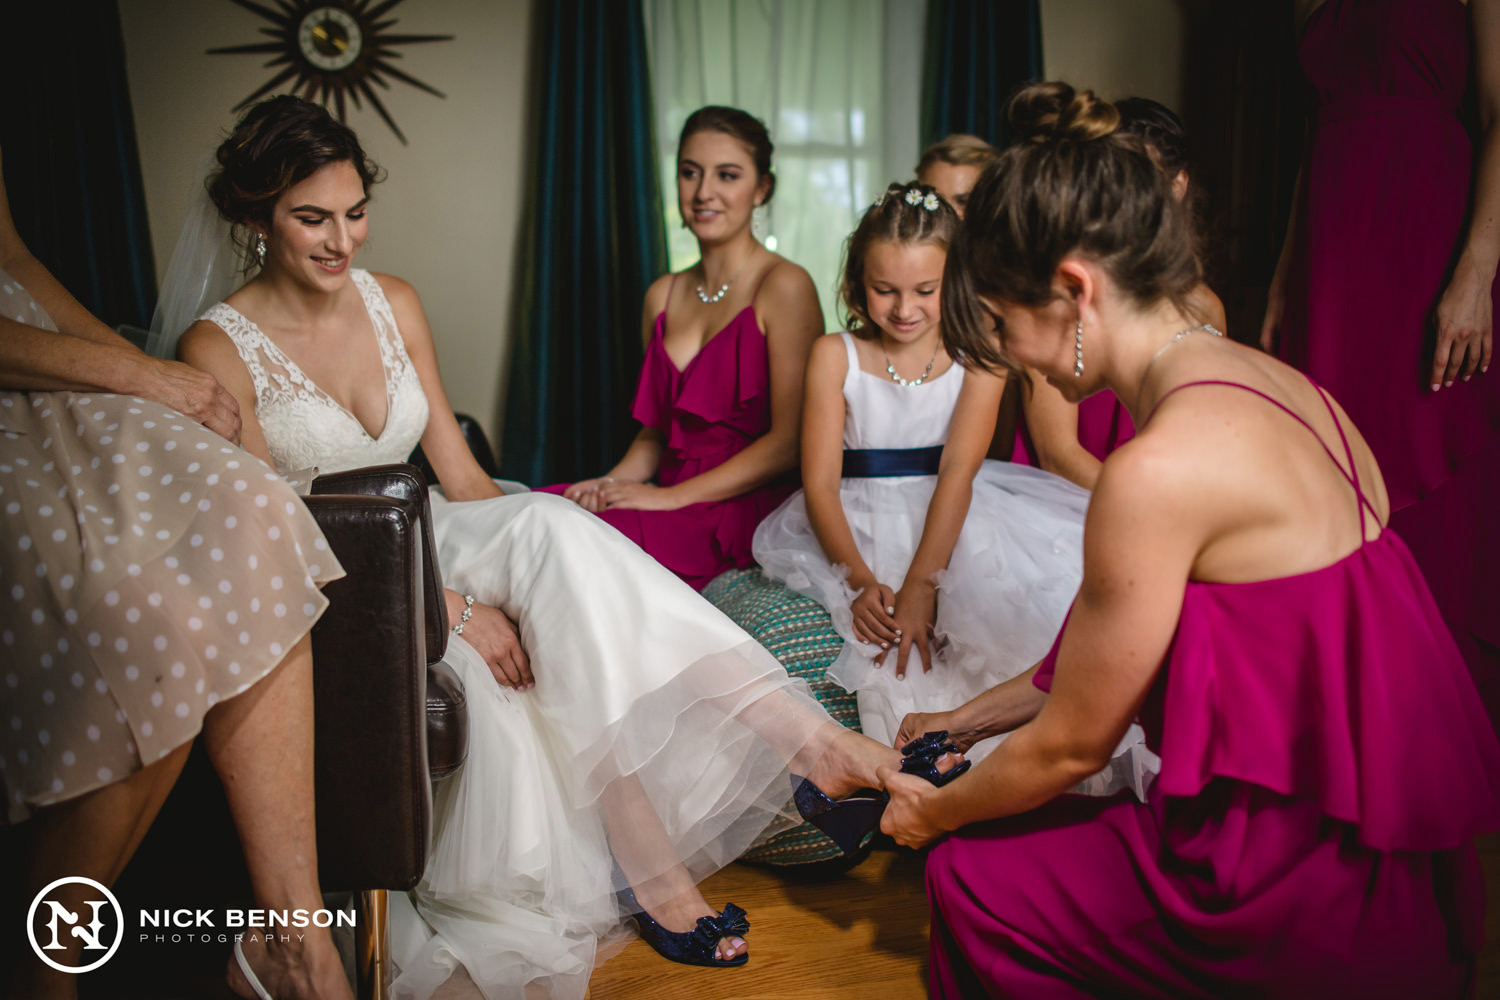 bridesmaids helping bride put shoes on